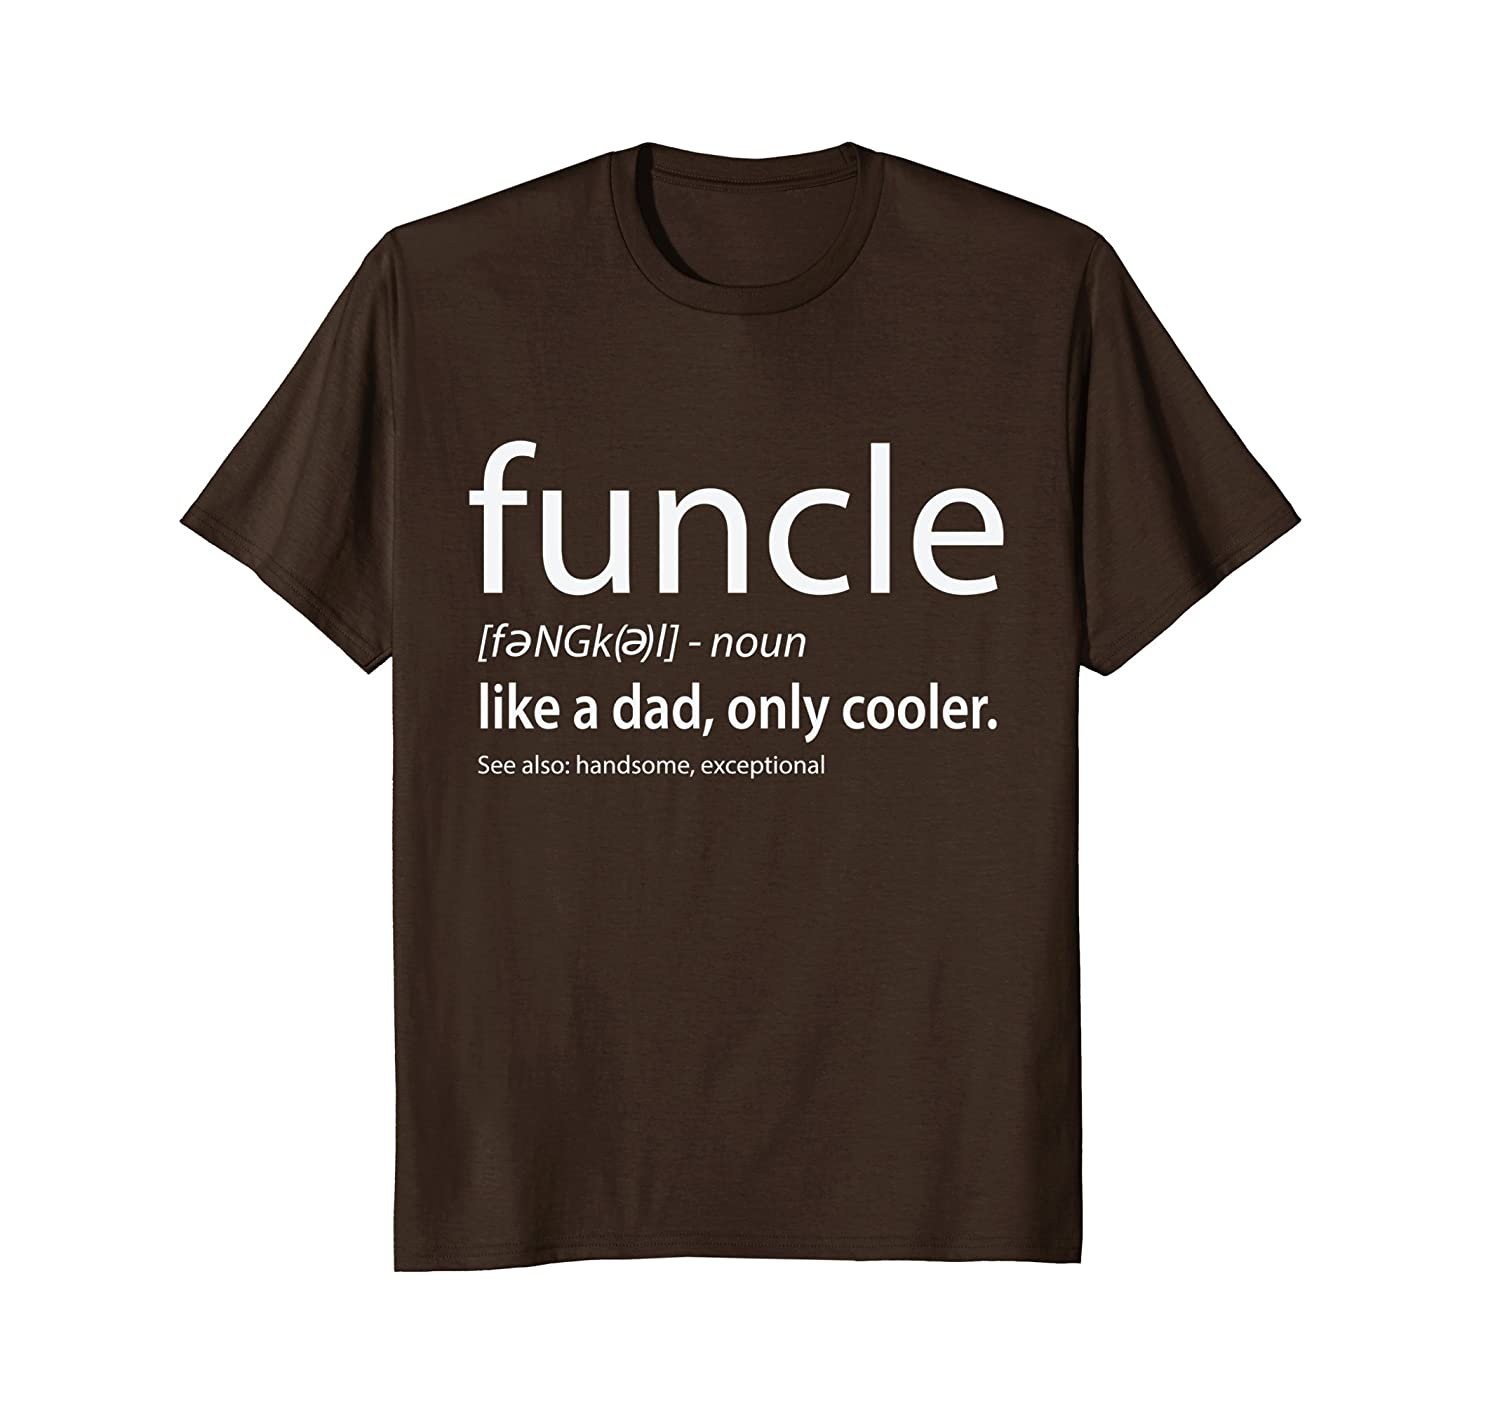 Funcle Definition T-shirt - Gift for the Best Uncle-alottee gift